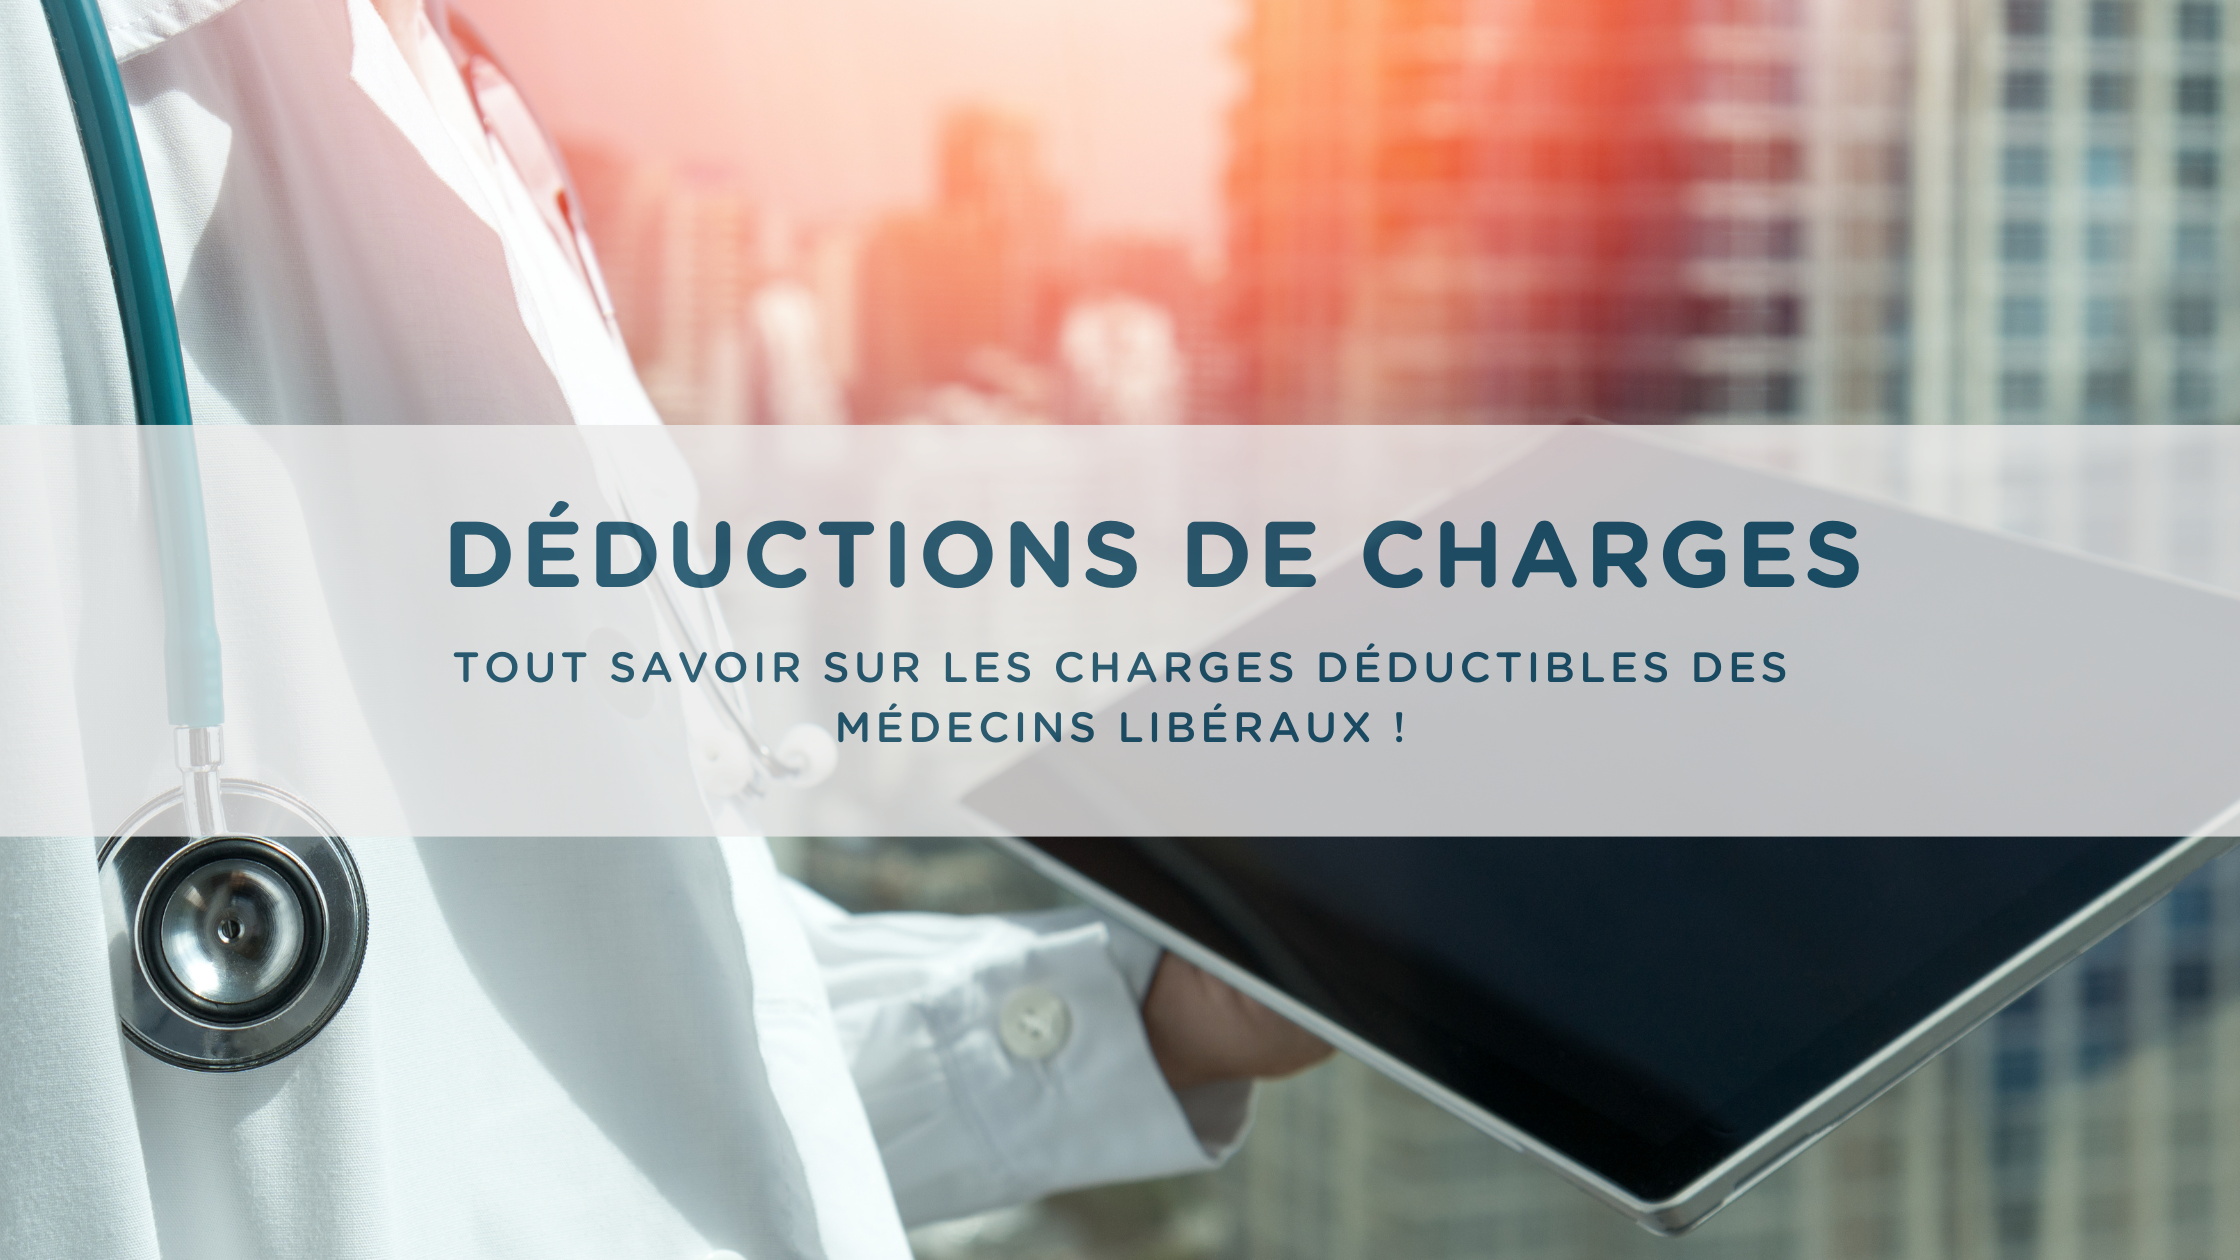 médecin liberal deduction de charges